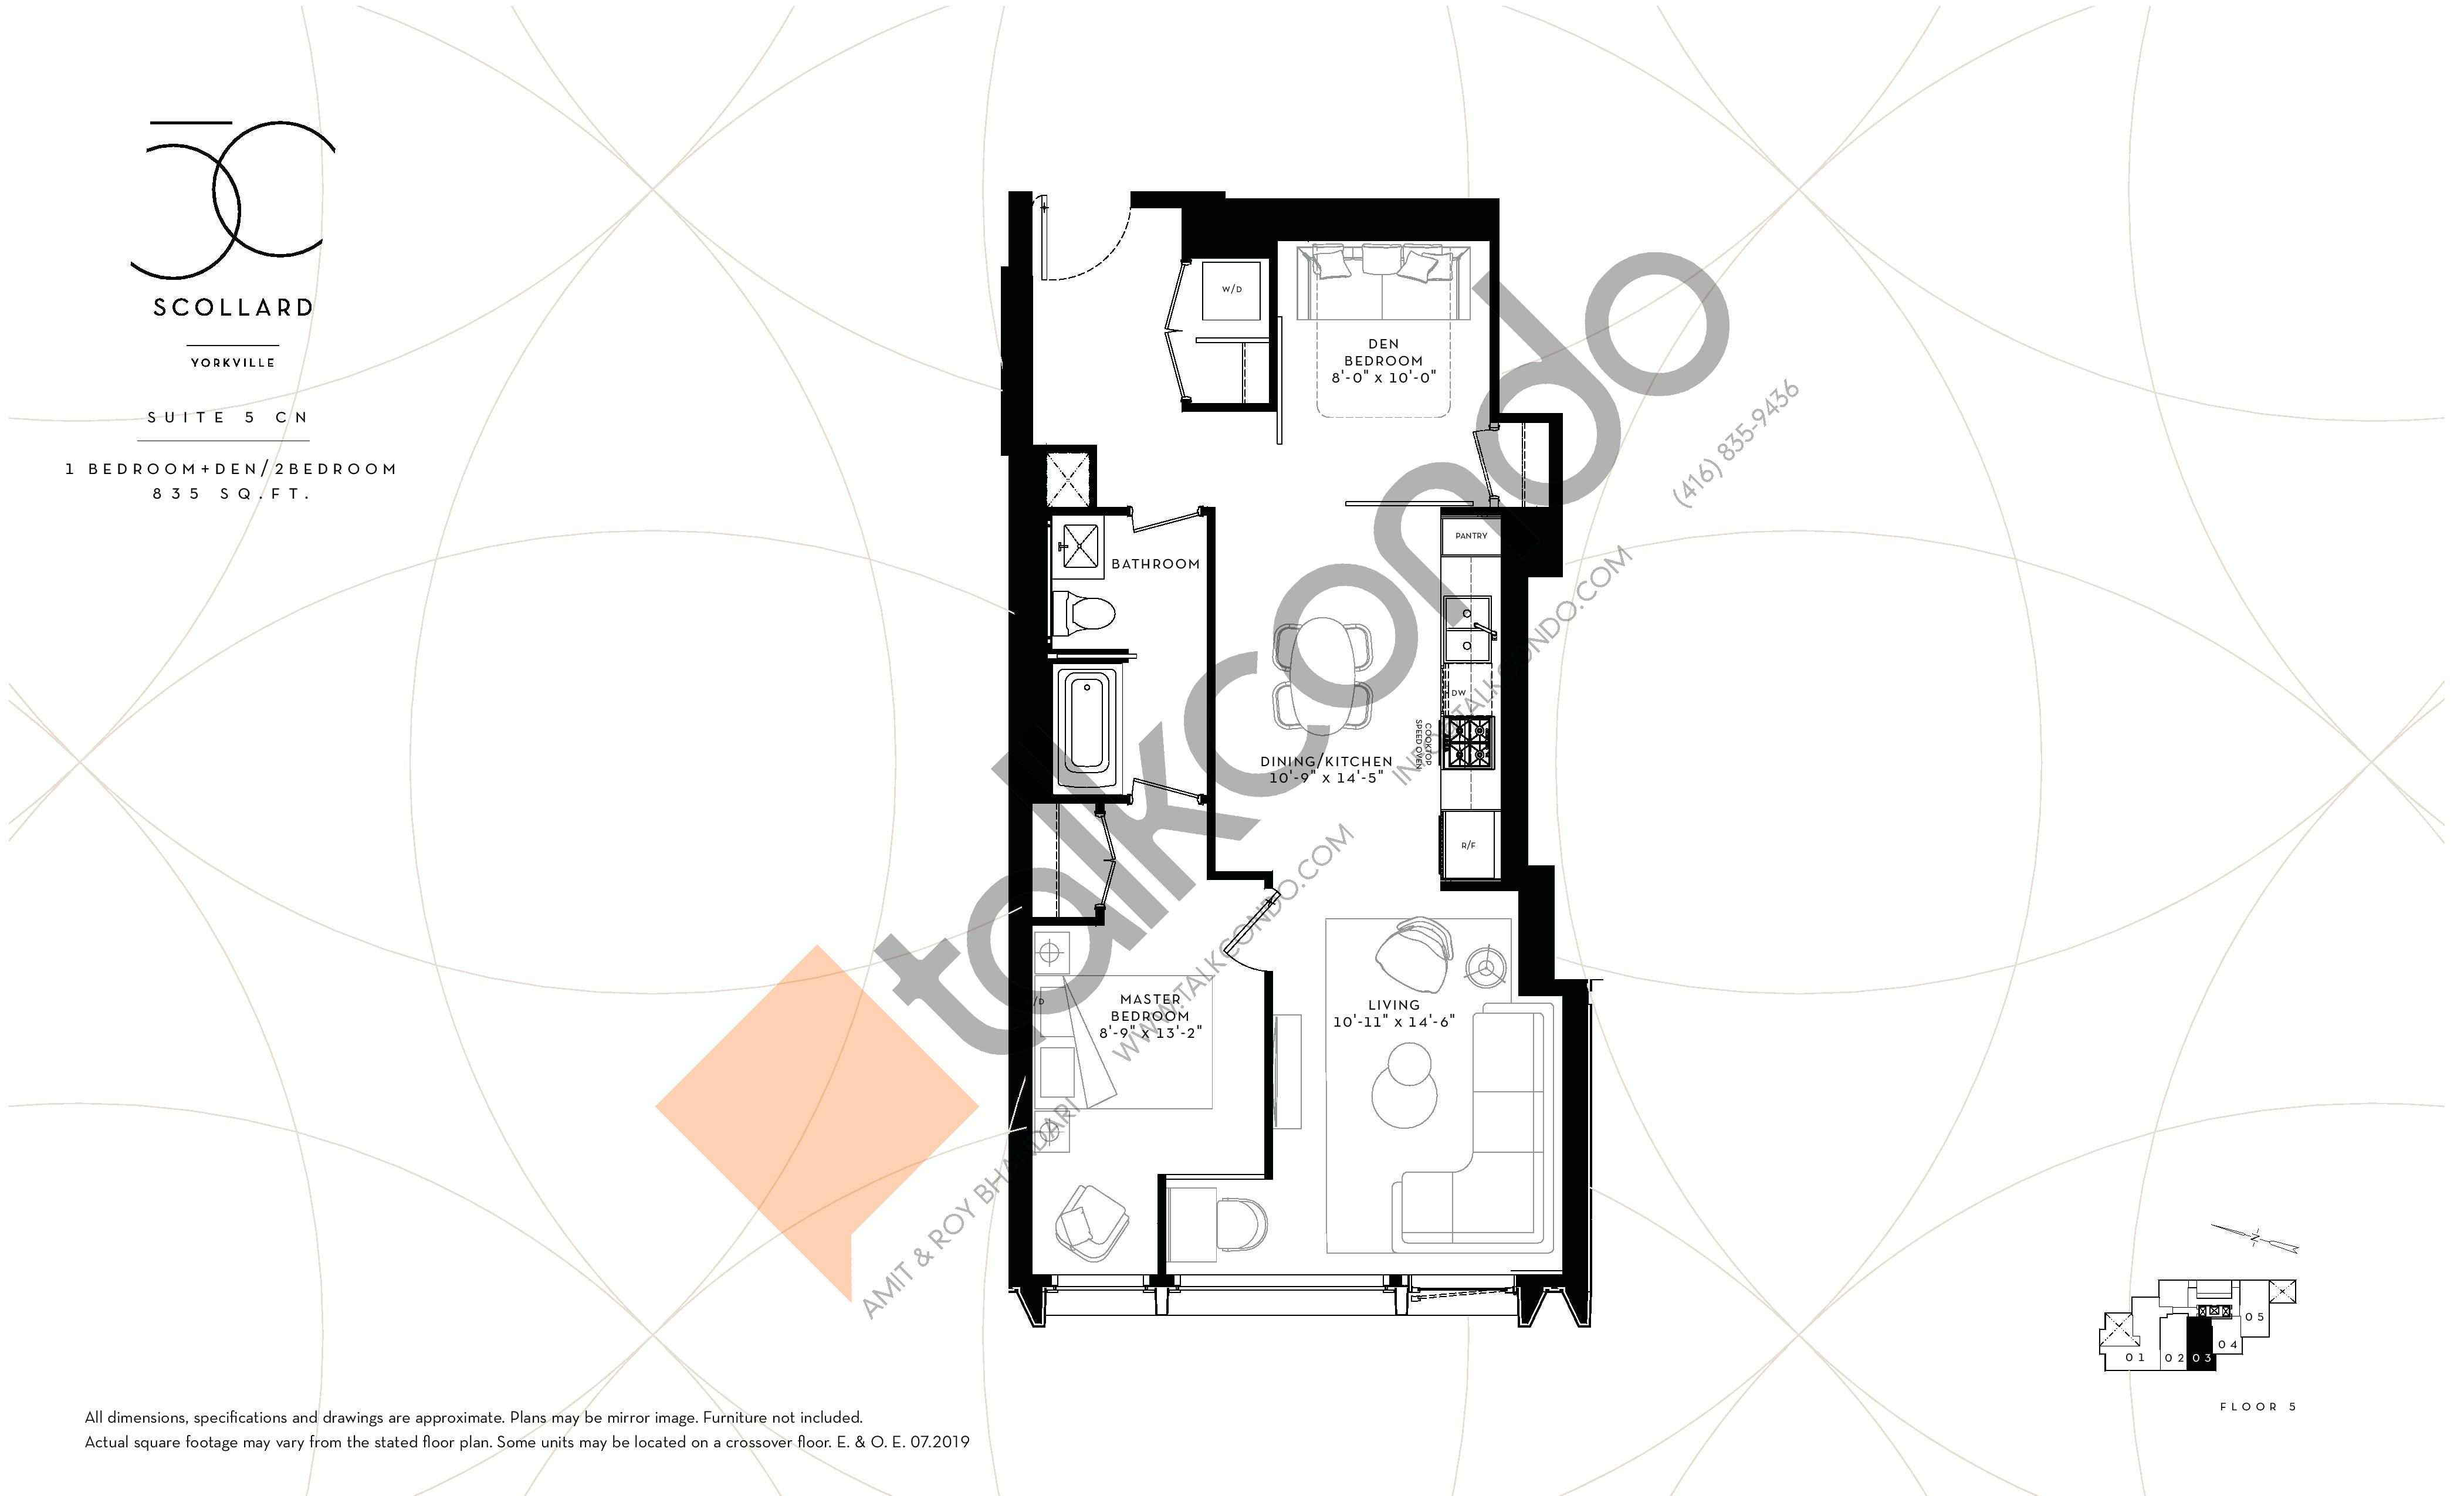 Suite 5 CN Floor Plan at Fifty Scollard Condos - 835 sq.ft